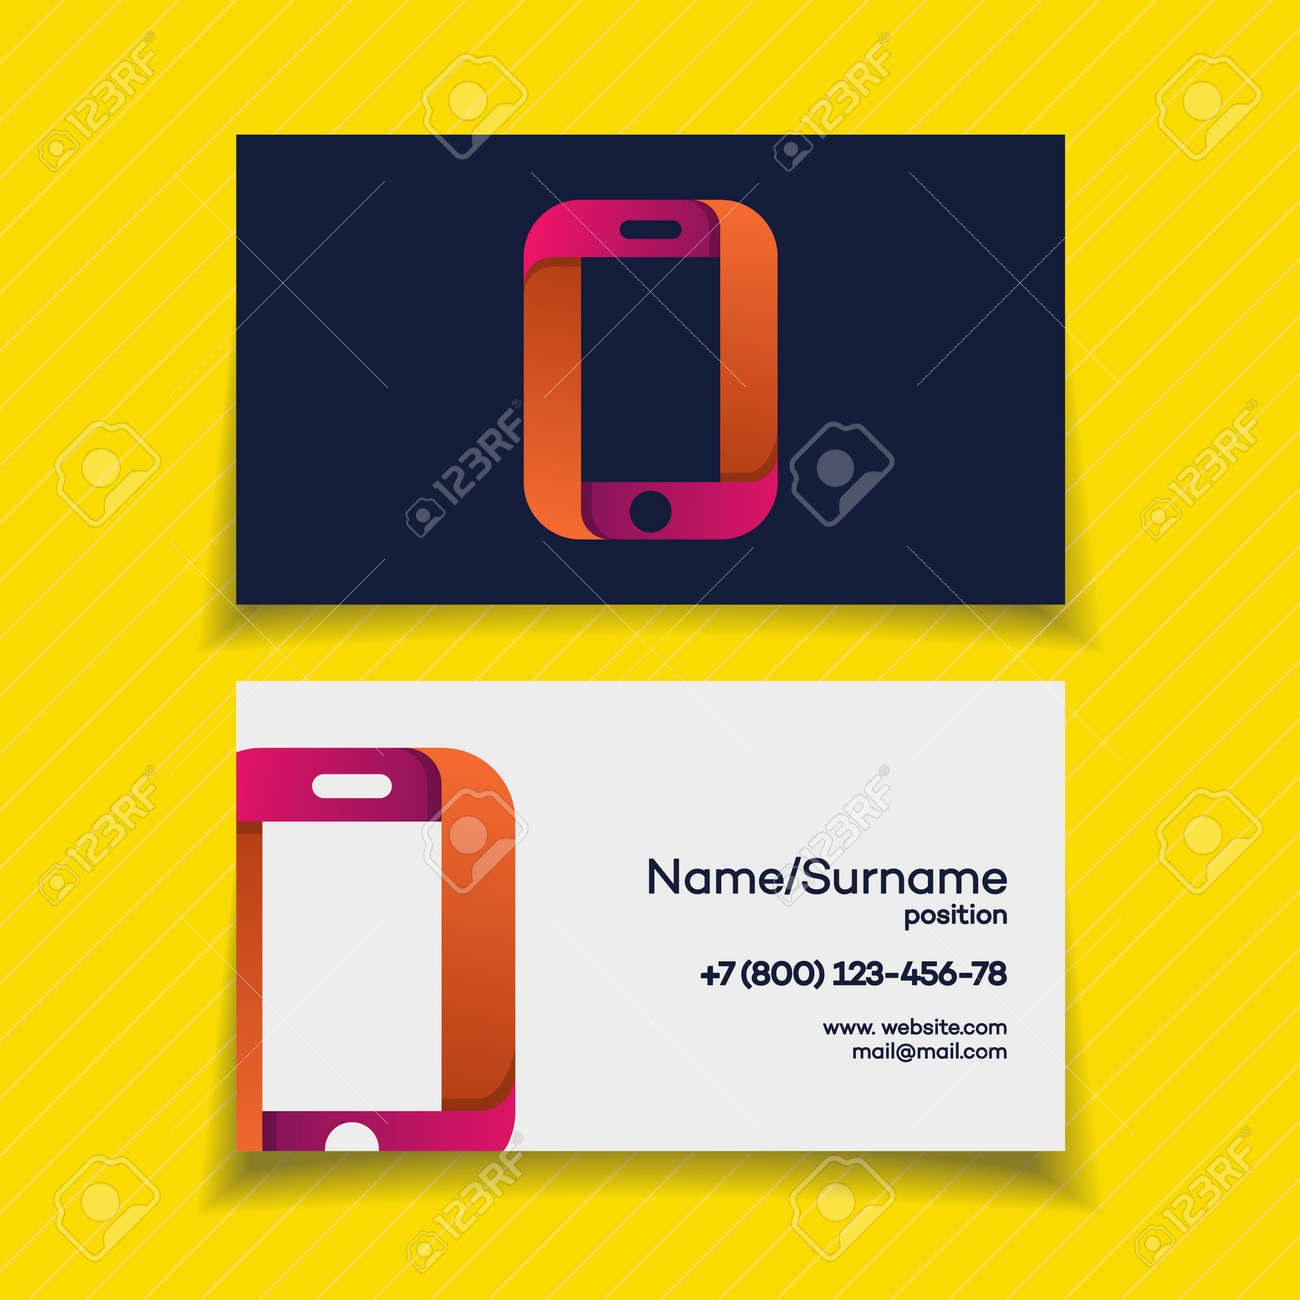 Business card design template with phone logo on yellow background business card design template with phone logo on yellow background use for mobile store mobile accmission Gallery